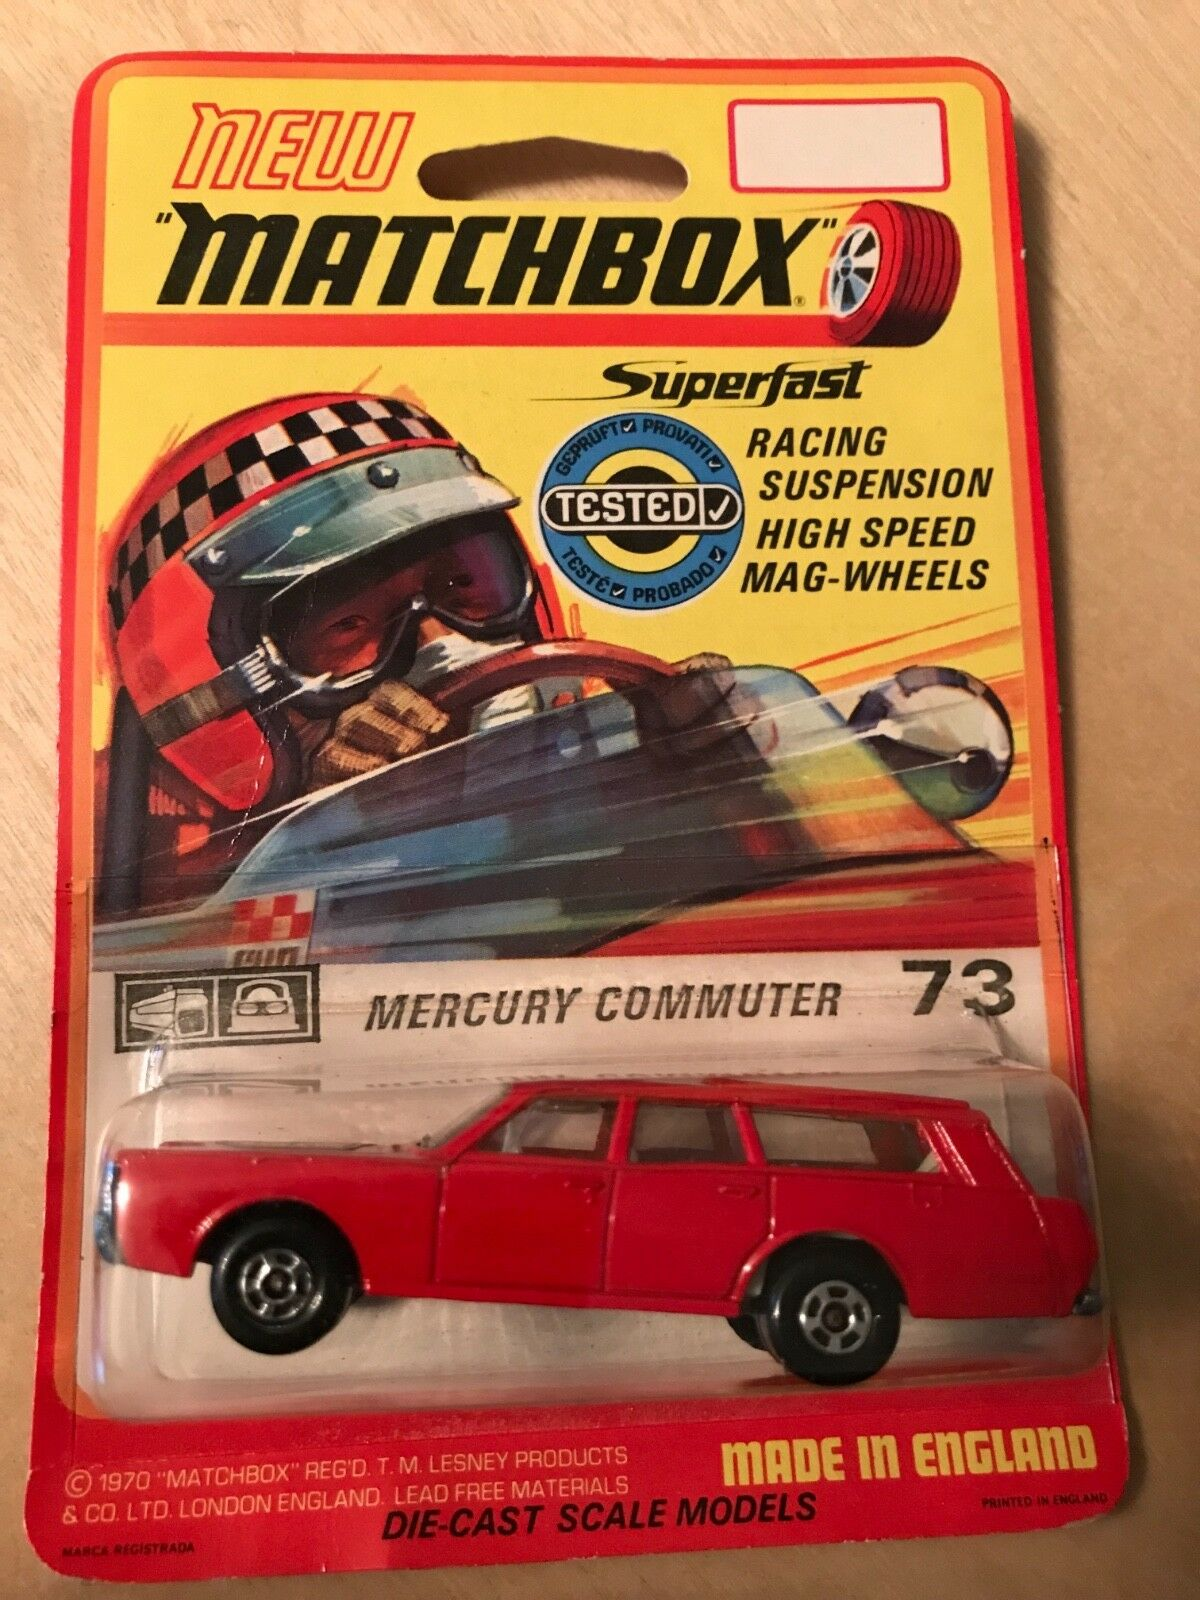 MATCHBOX MERCURY COMMUTER 73 Made in 1969 1970 1970 1970 in (environ 5003.80 cm) Blister. Rare. Comme neuf 271570